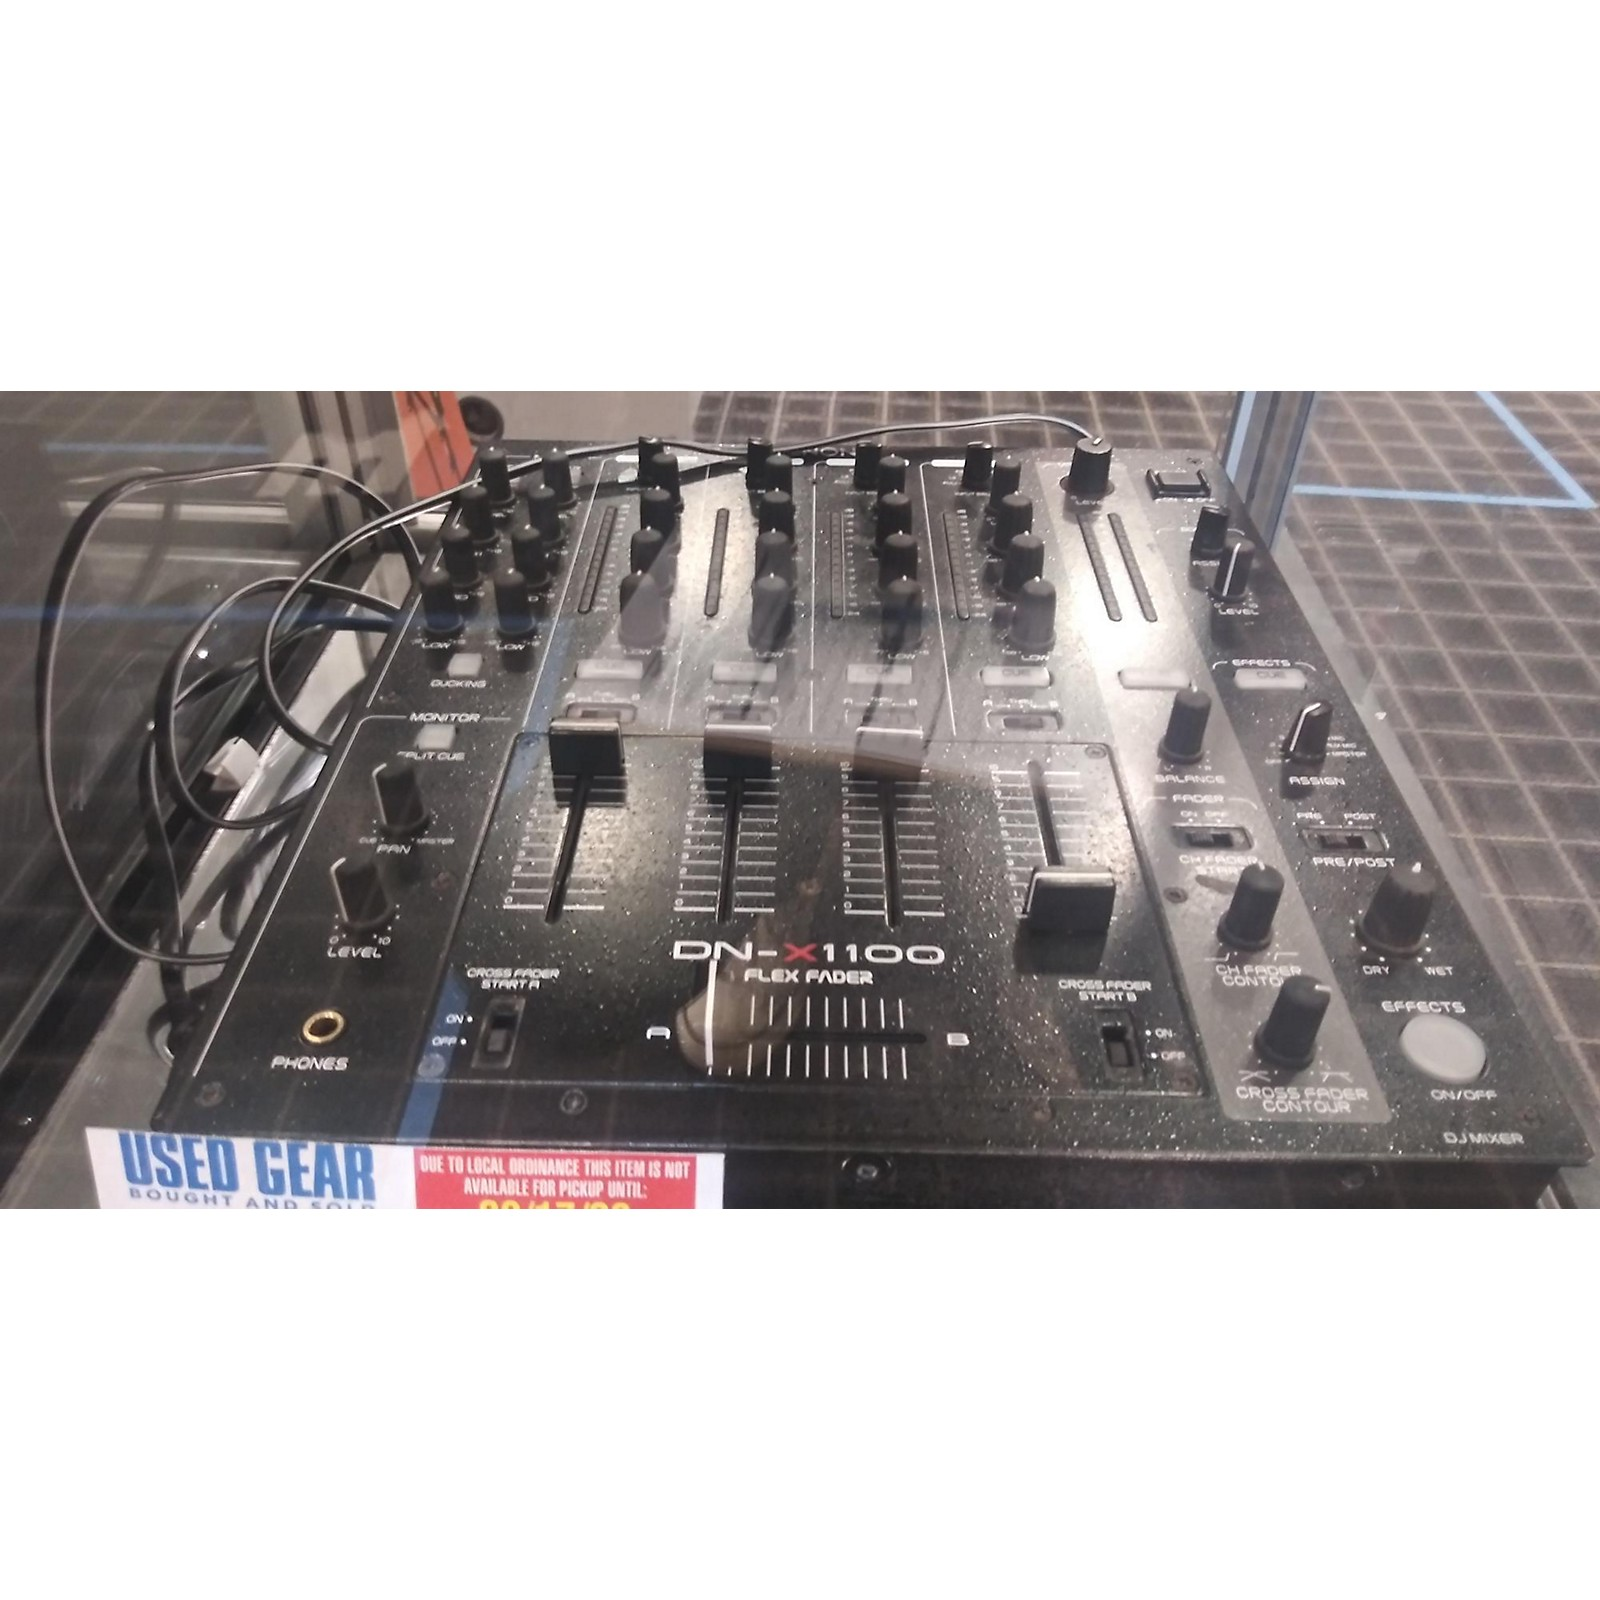 In Store Used Used Denon DNX1100 DJ Mixer